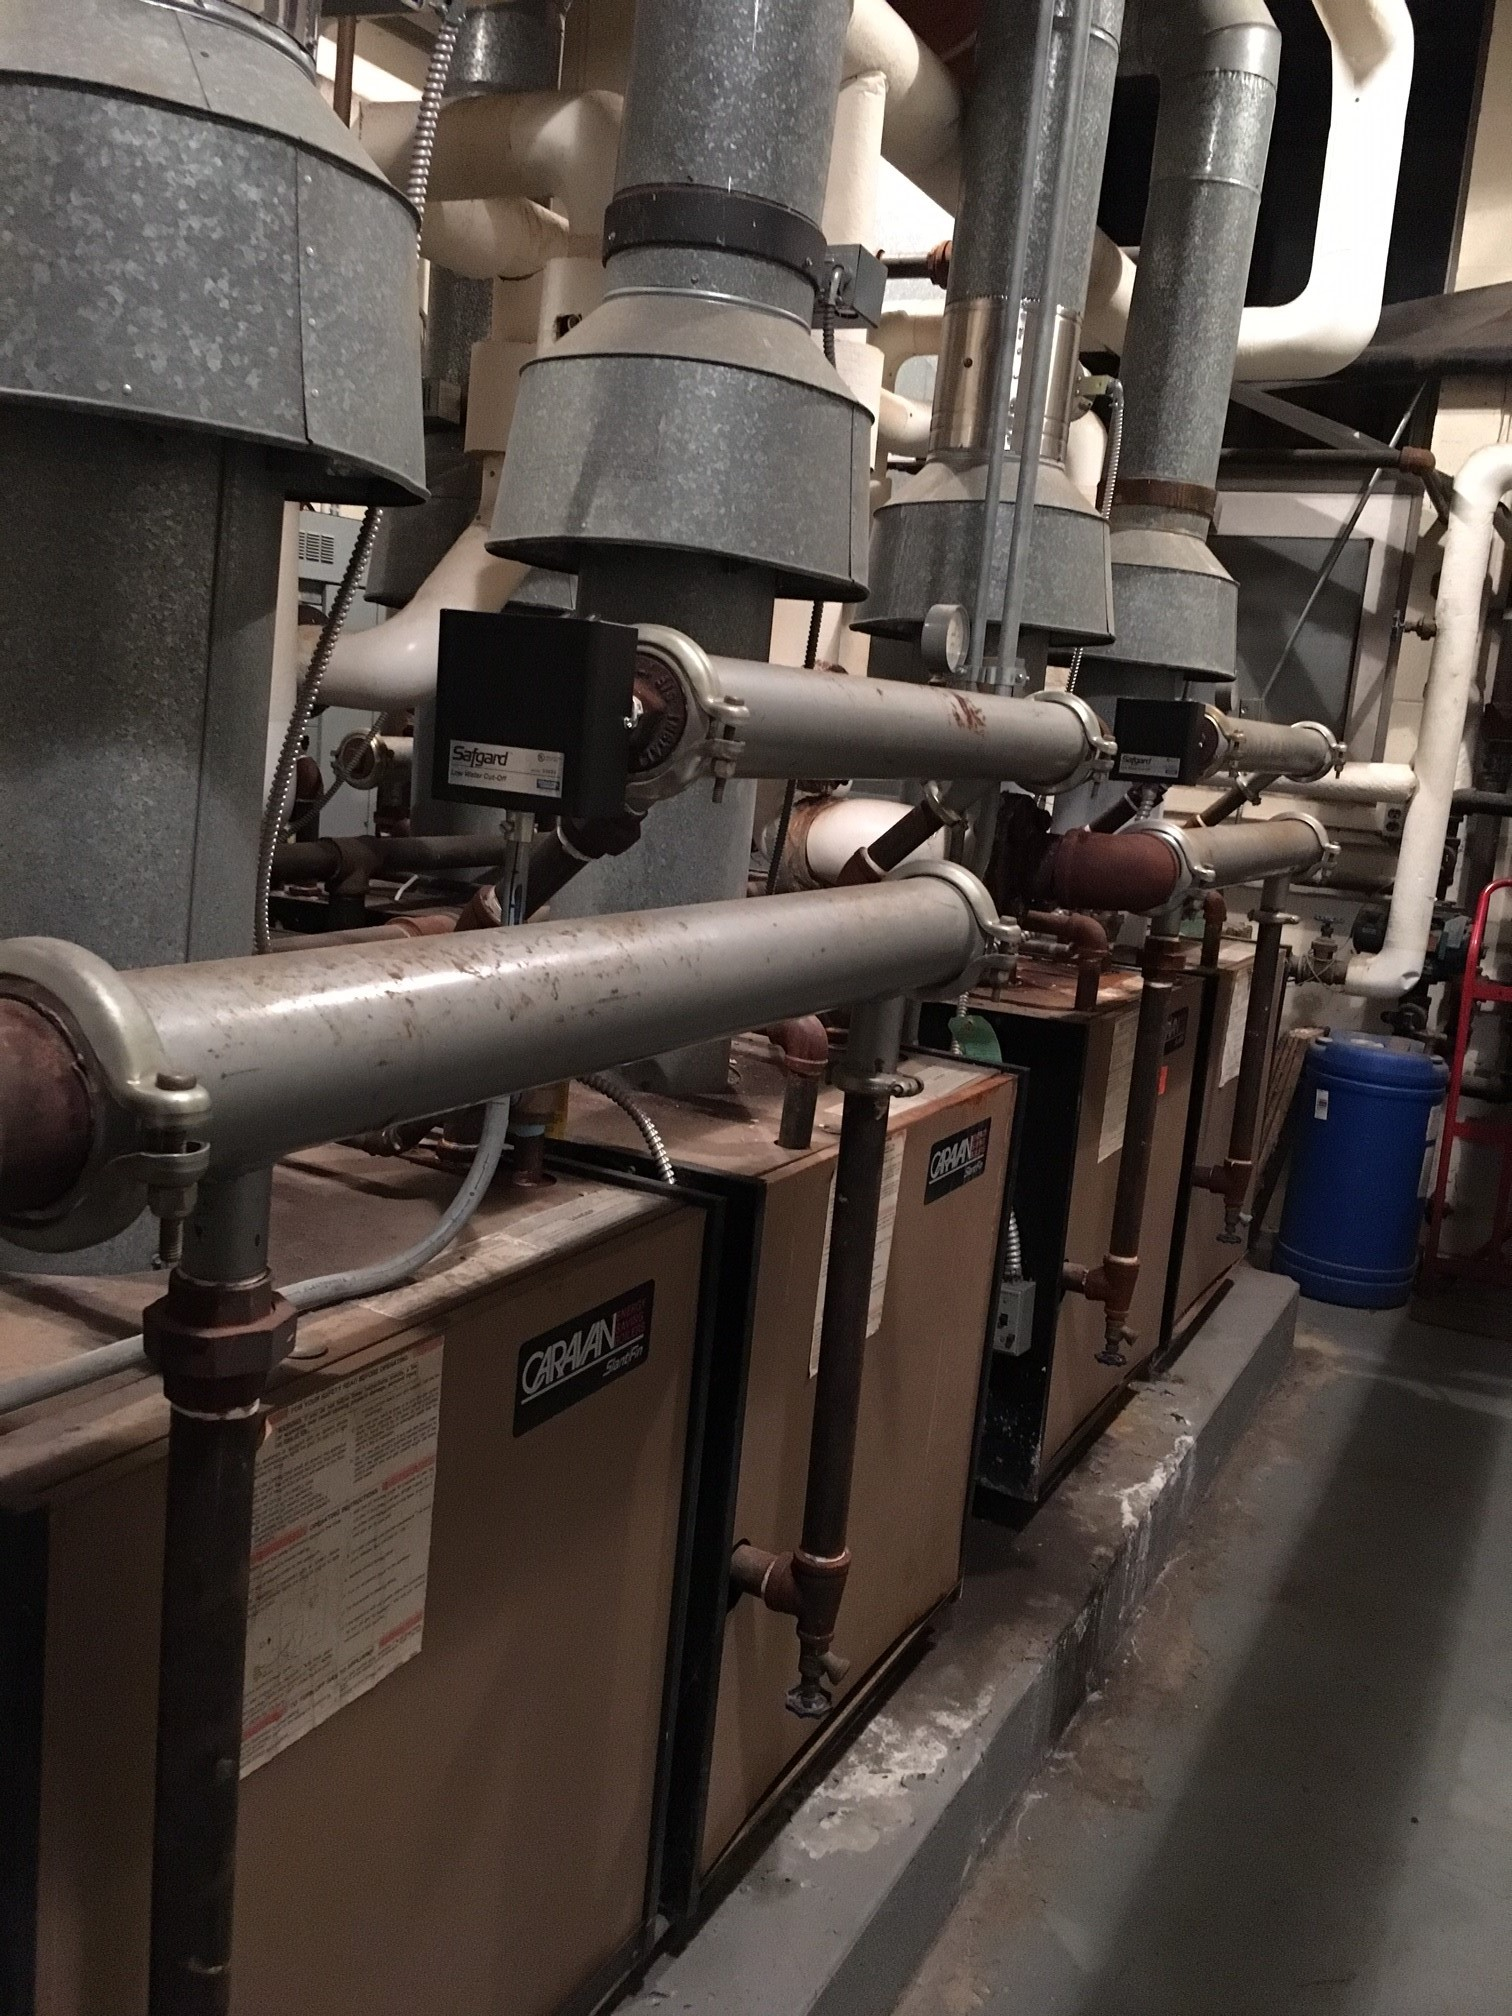 Our current boilers